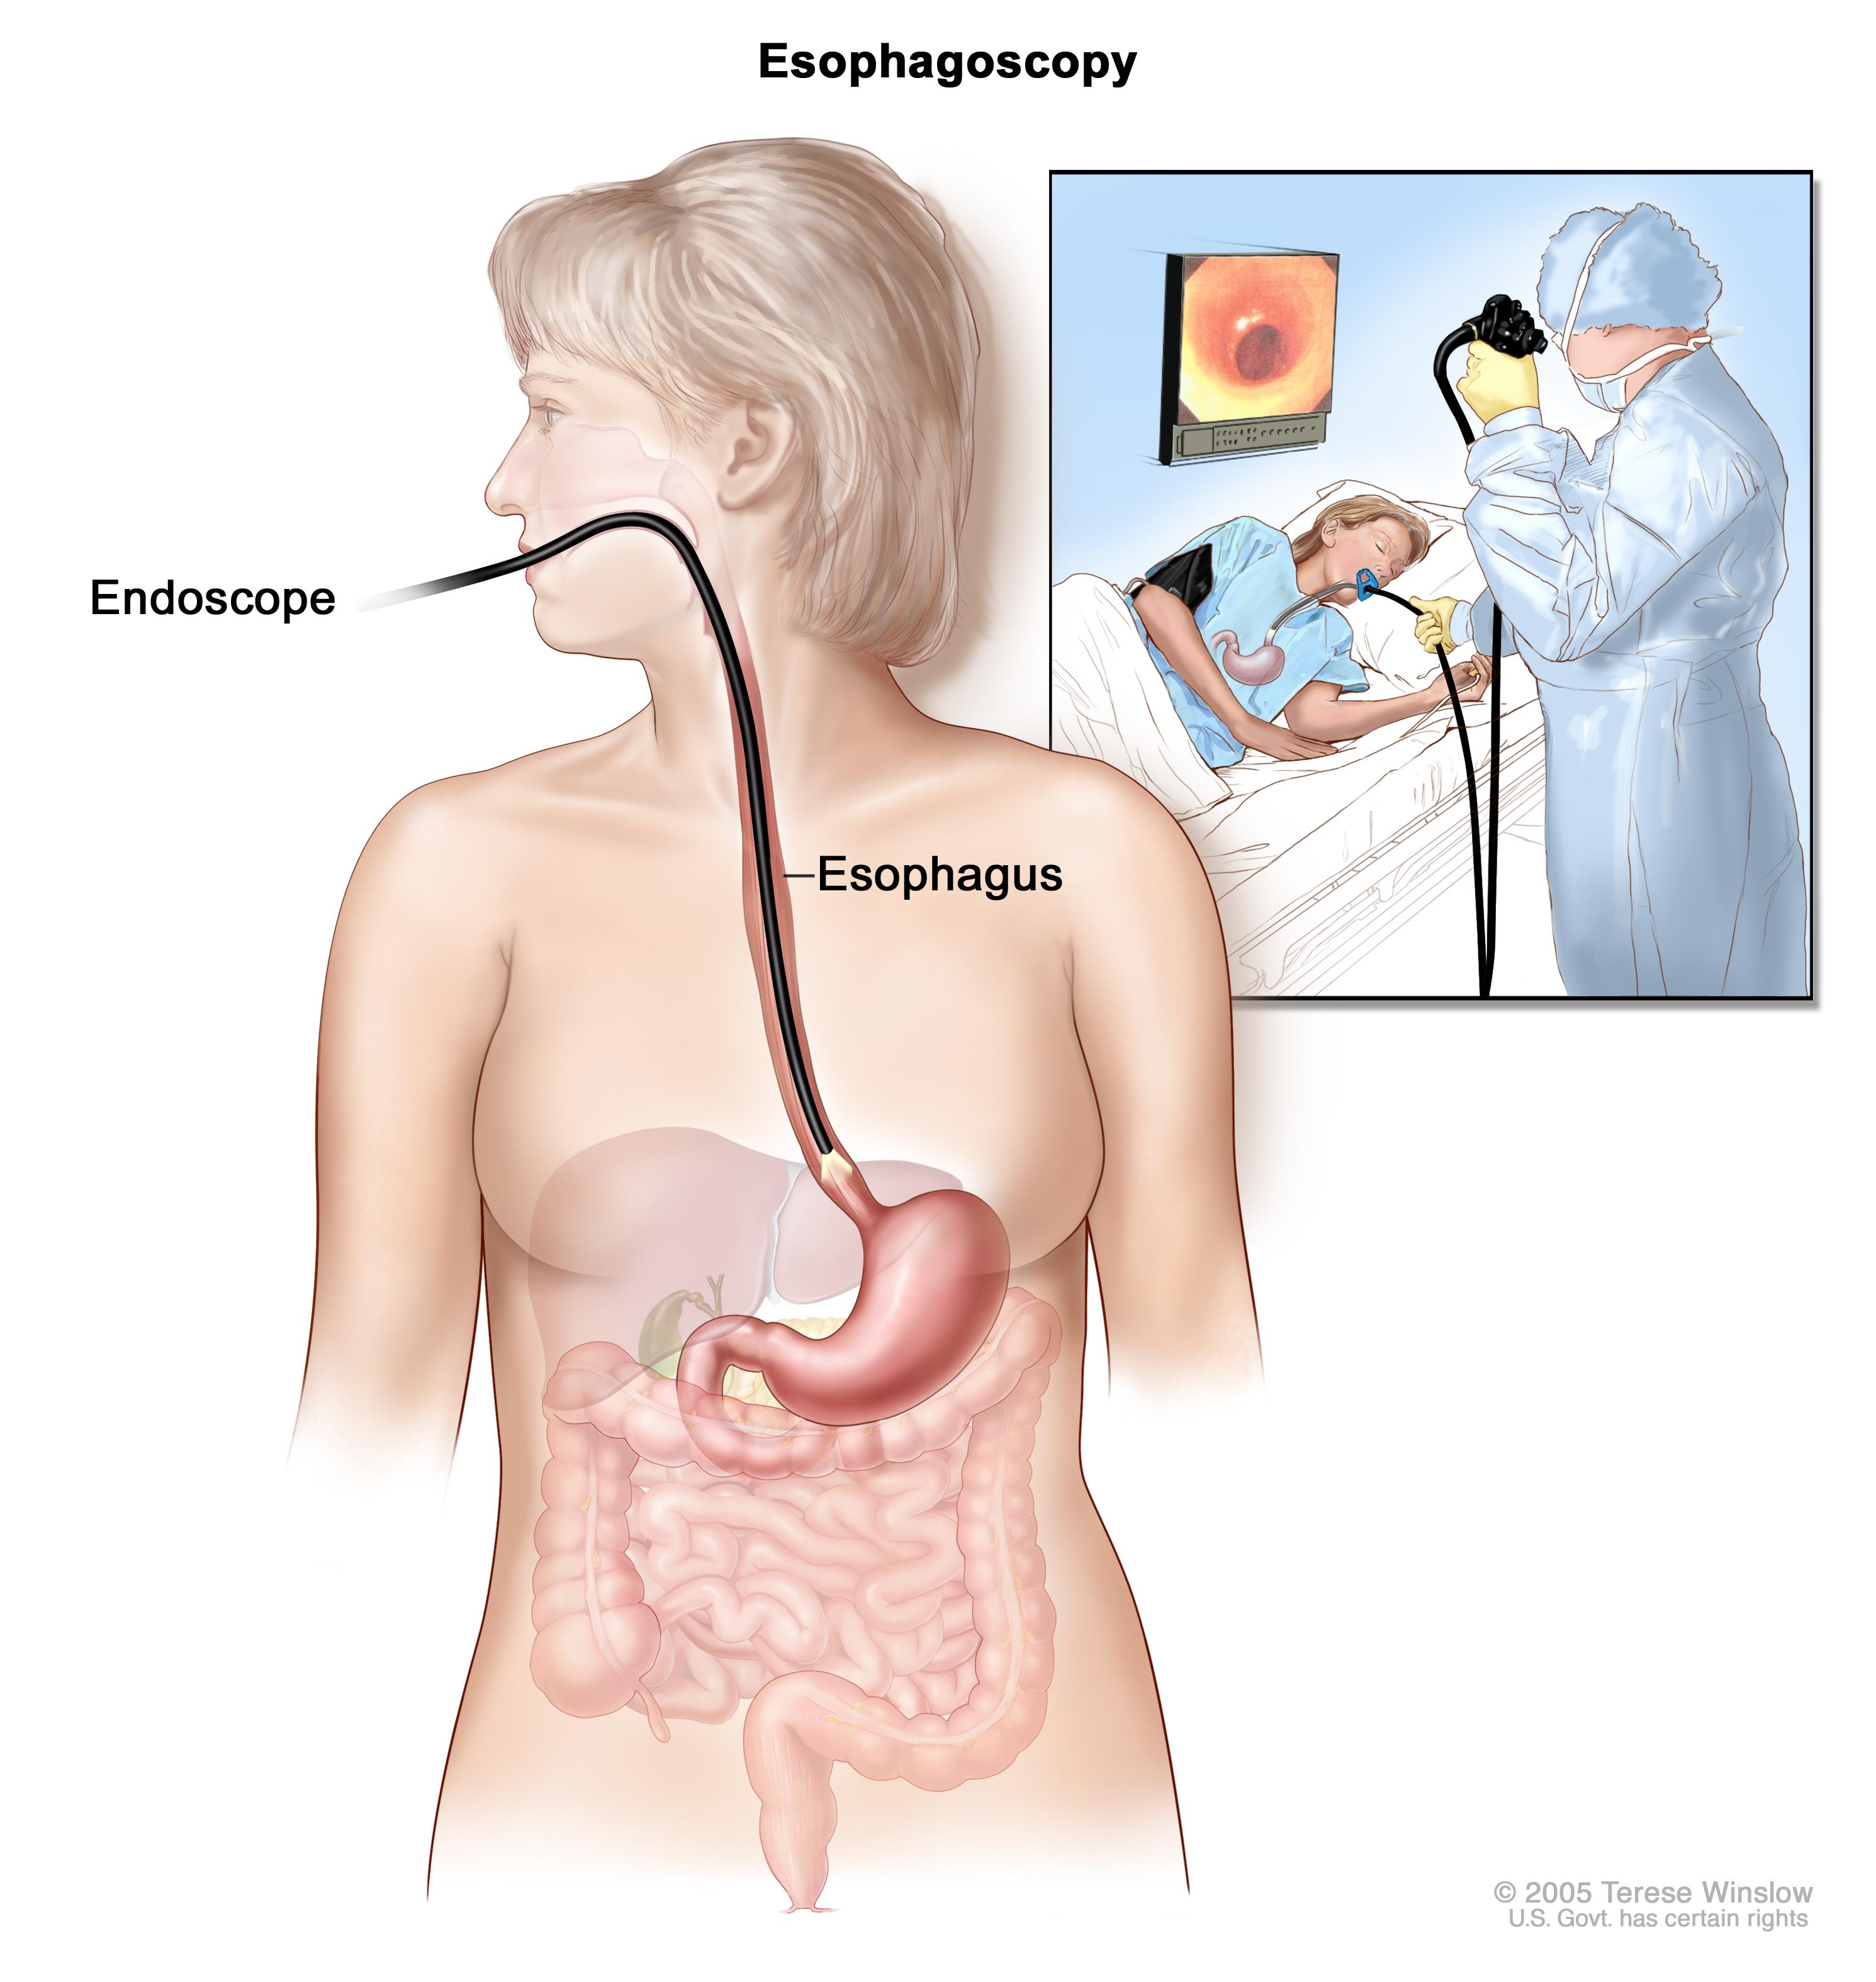 esophageal cancer caused by hpv